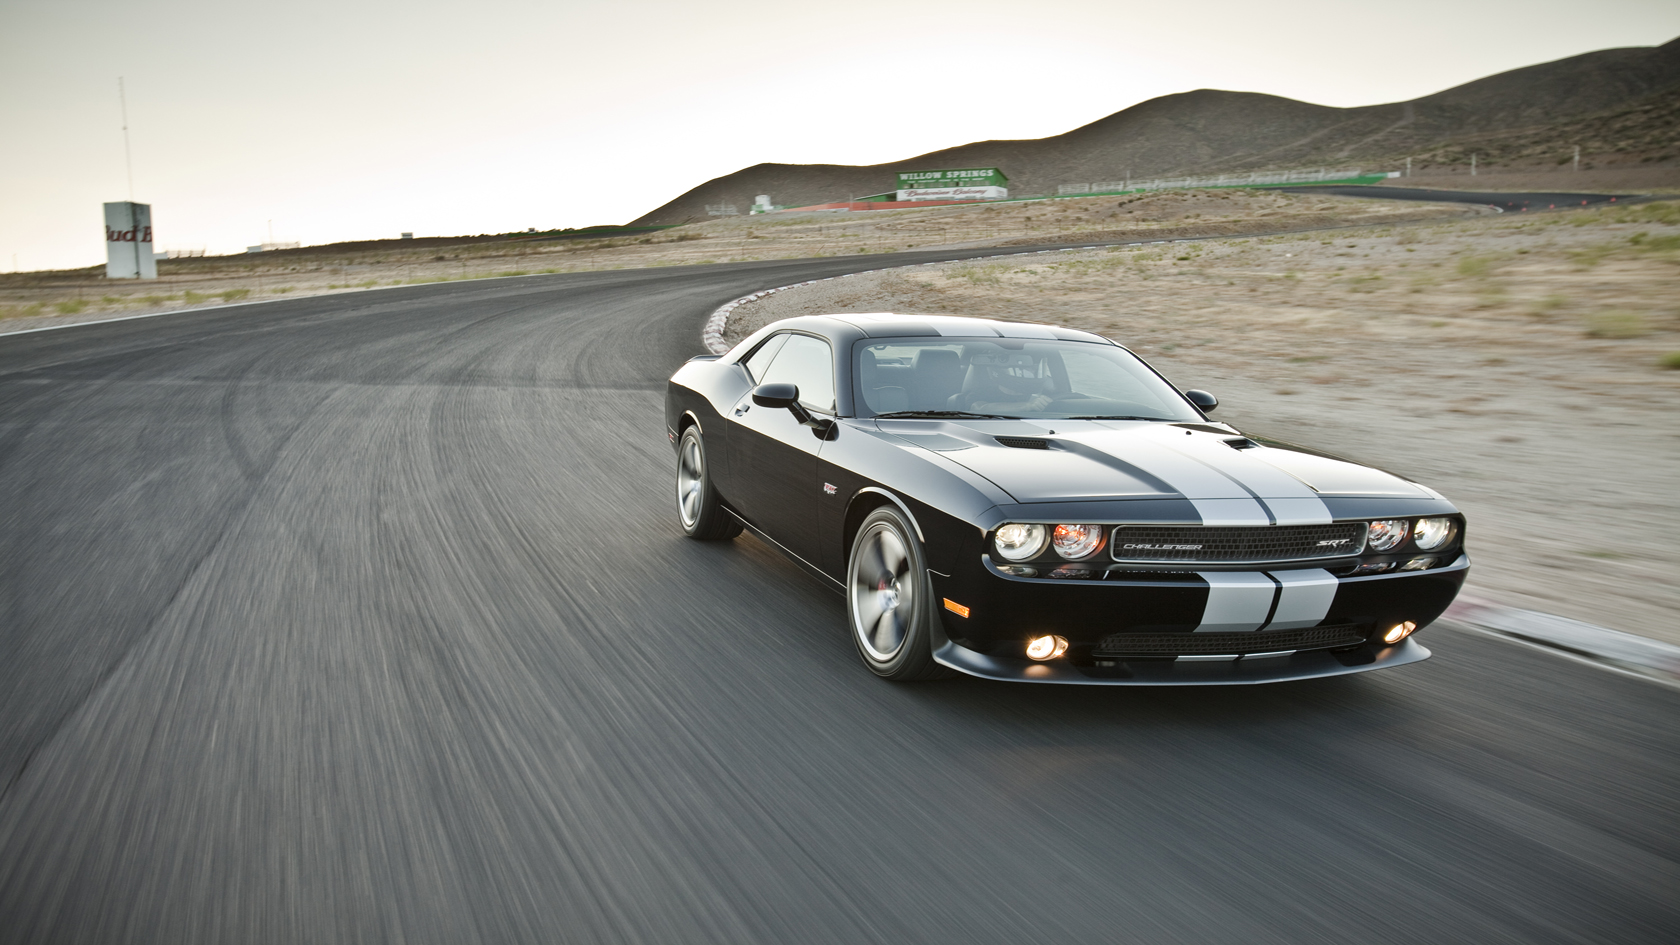 challenger and barracuda to coexist? 6.2l supercharged cuda